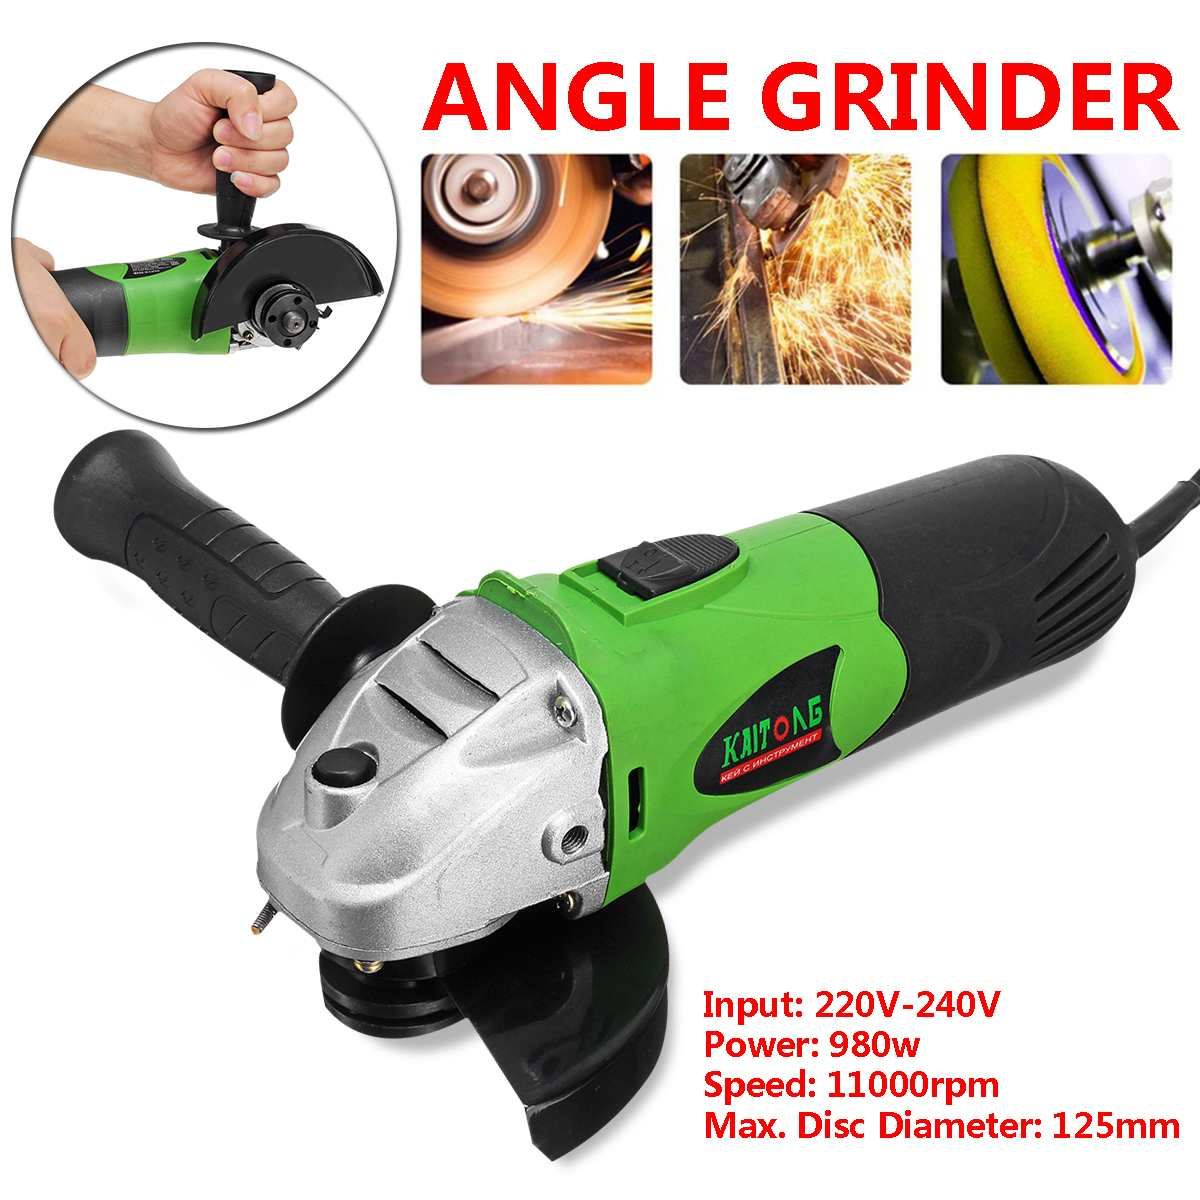 980W Electric Angle Grinder 115 125mm Grinding Machine Metal Cutting Tool 11000RPM Adjustable Anti Slip EU PLug Powerful Protect